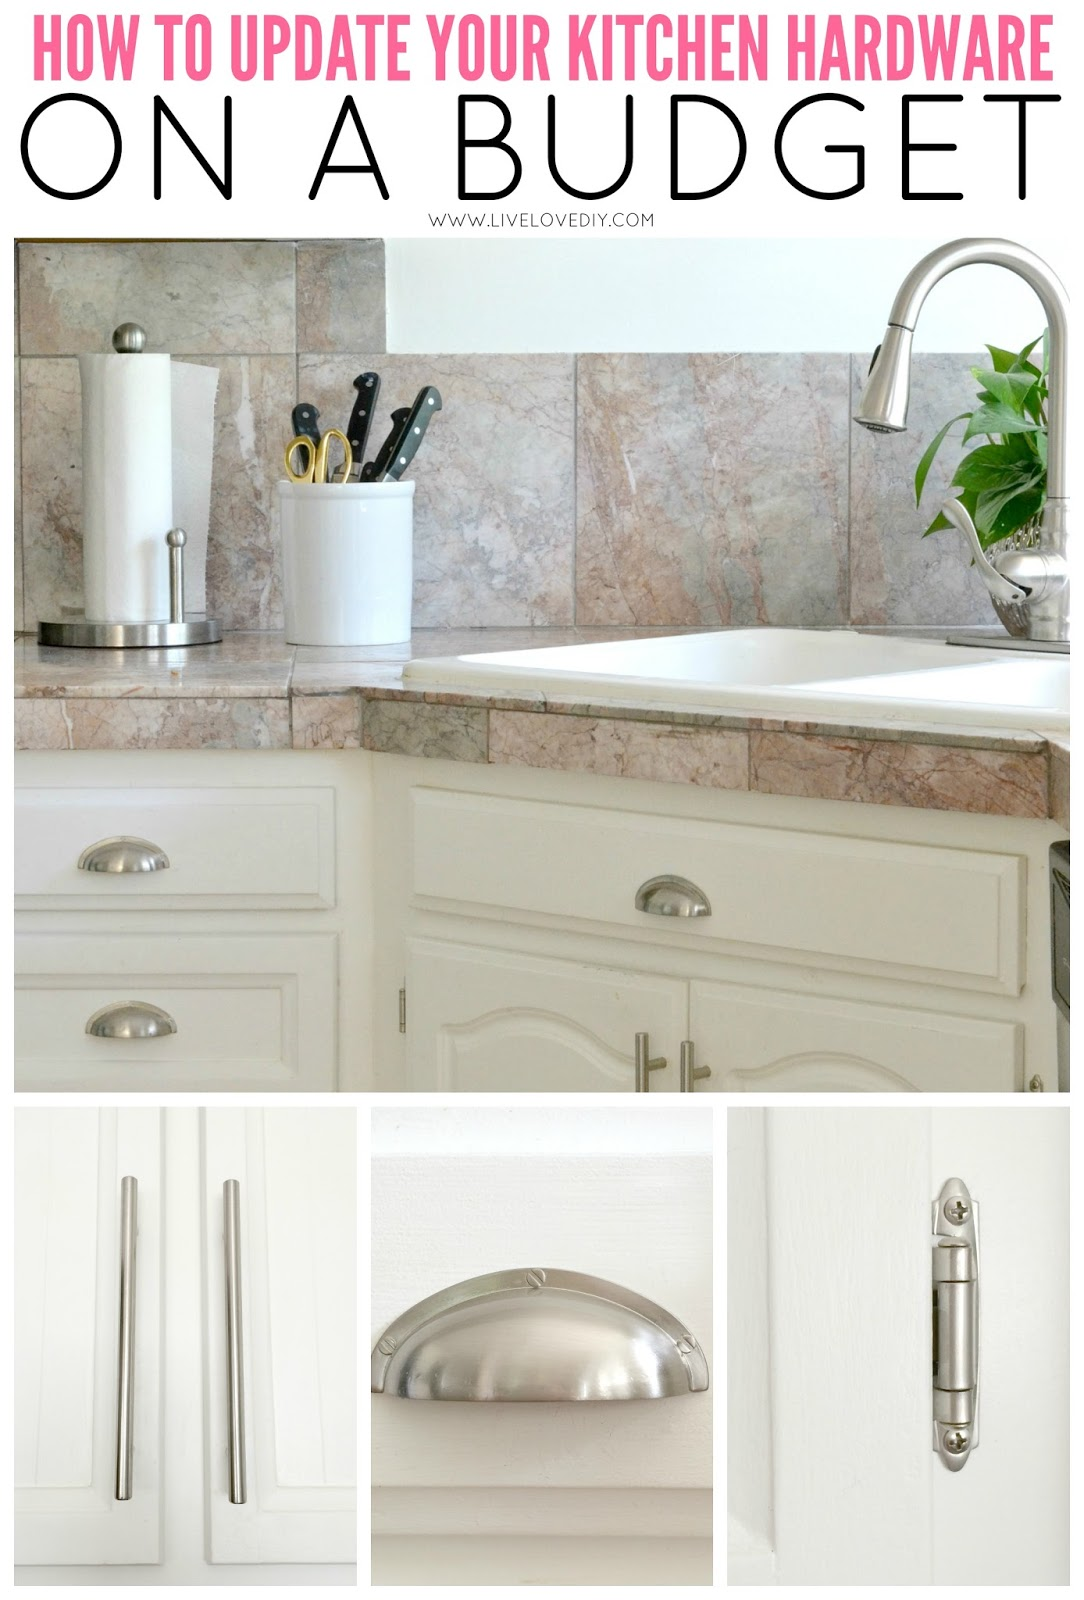 Cabinets In 10 Easy Steps And Where To Find NICE Kitchen Hardware